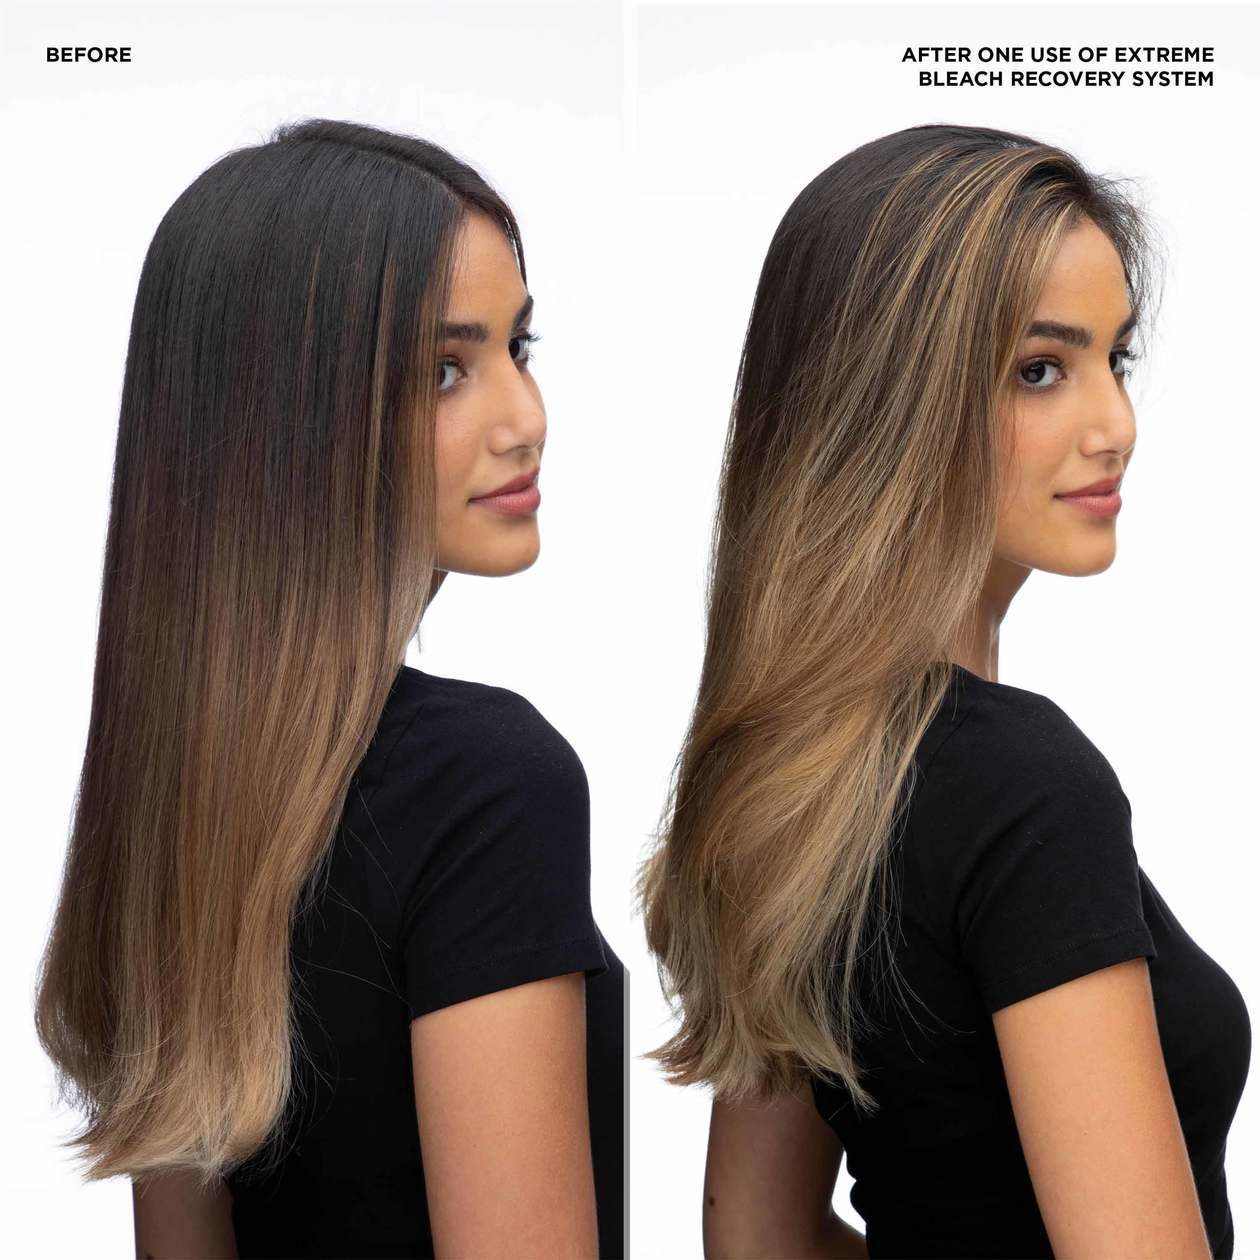 Redken-2020-Extreme-Bleach-Recovery-ERetail-Images-Brooke-Before-After1-3000x3000